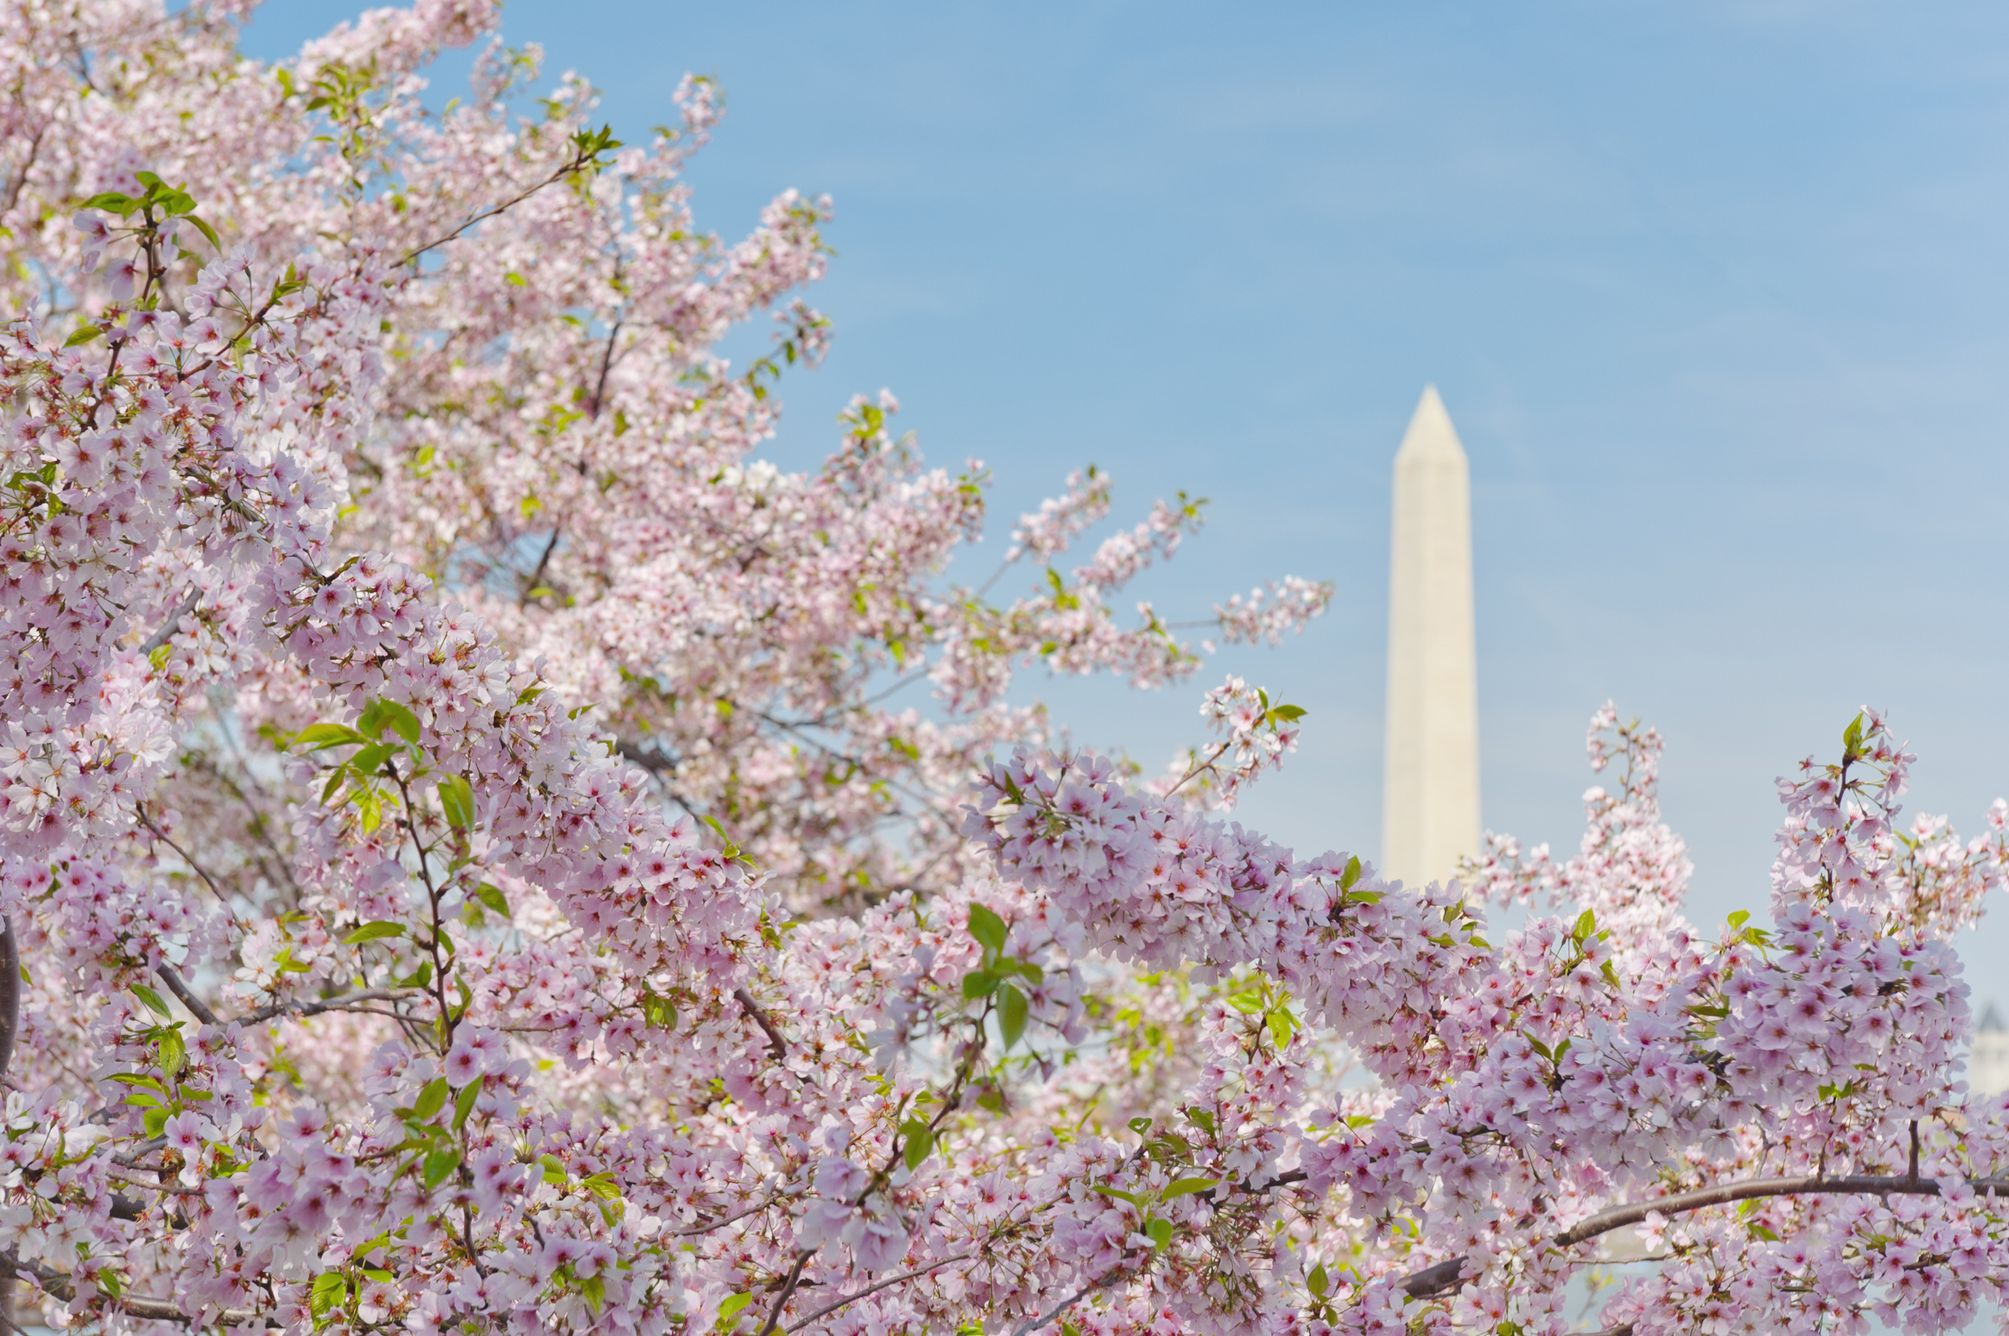 USA, Washington DC, Cherry blossom with Washington Monument in background